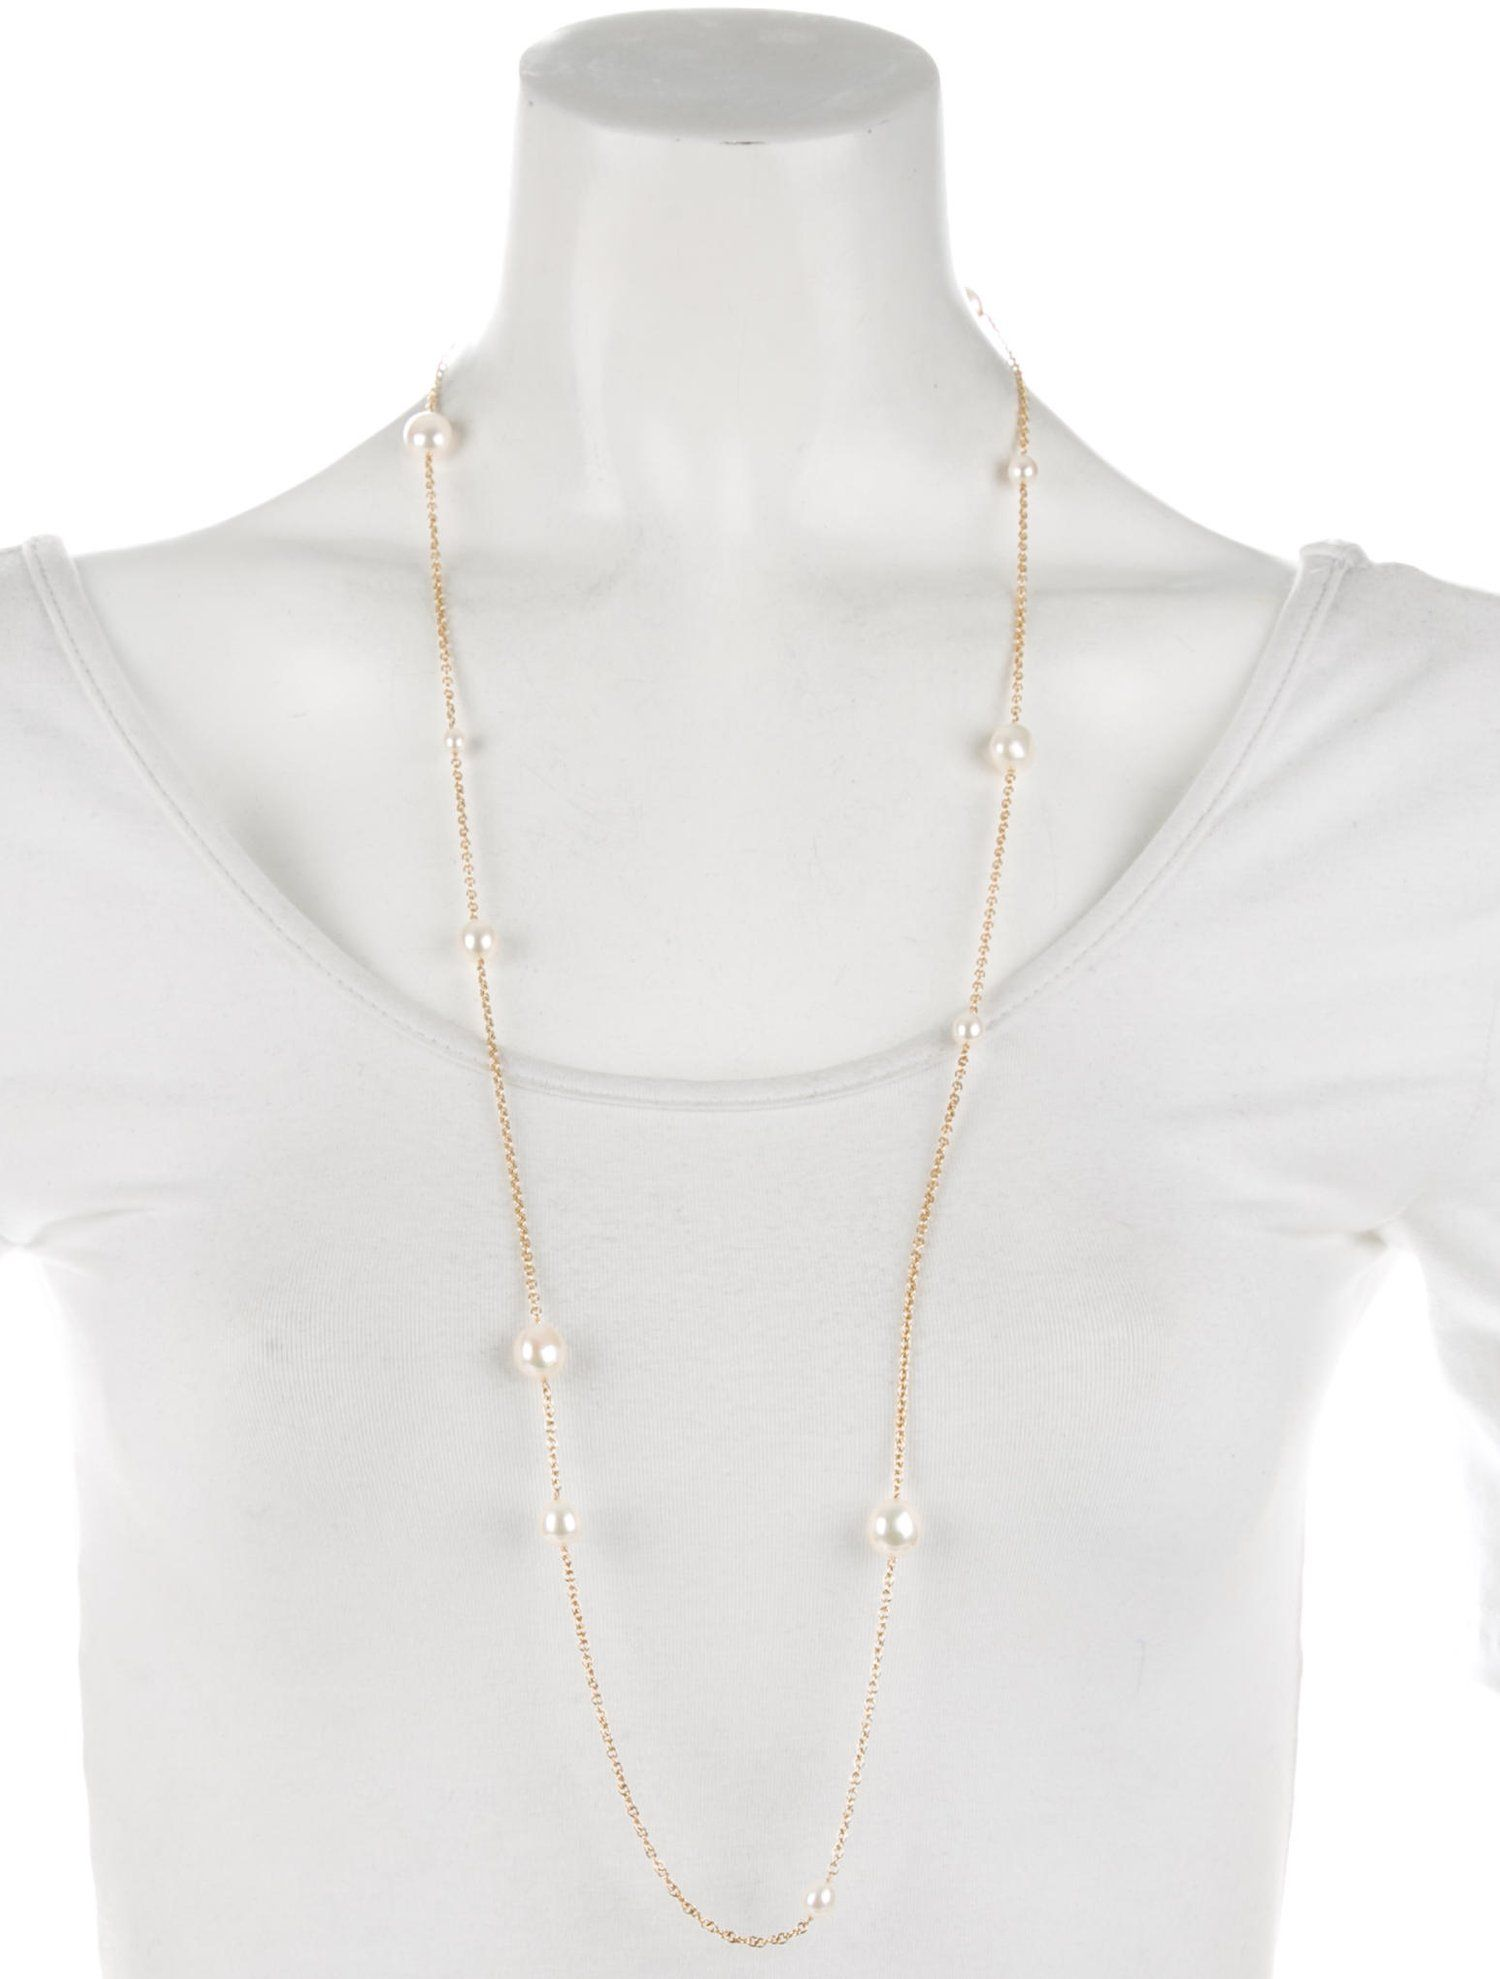 3404874a7 Tiffany & Co. 18K Pearls by the Yard Sprinkle Necklace #amp #Tiffany #Pearls